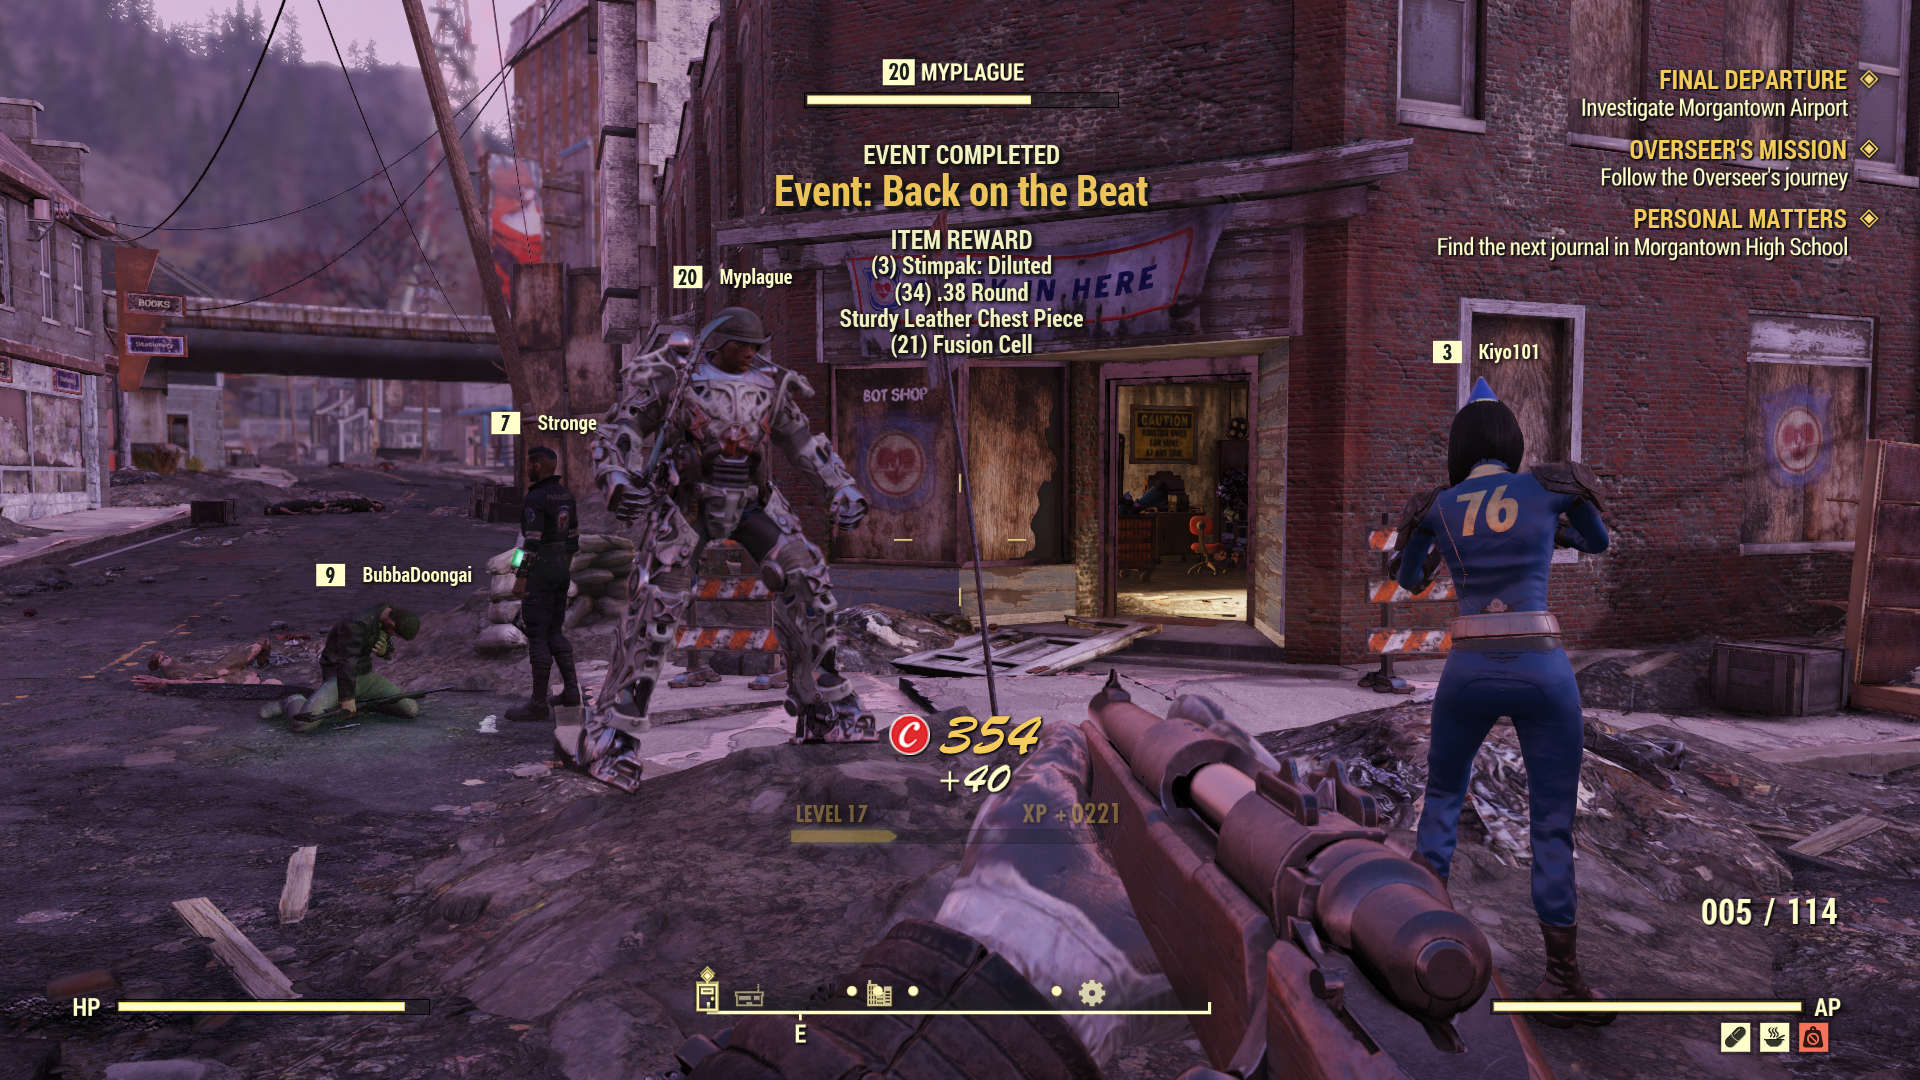 Fallout 76 public events: what they are and how to find them | PCGamesN